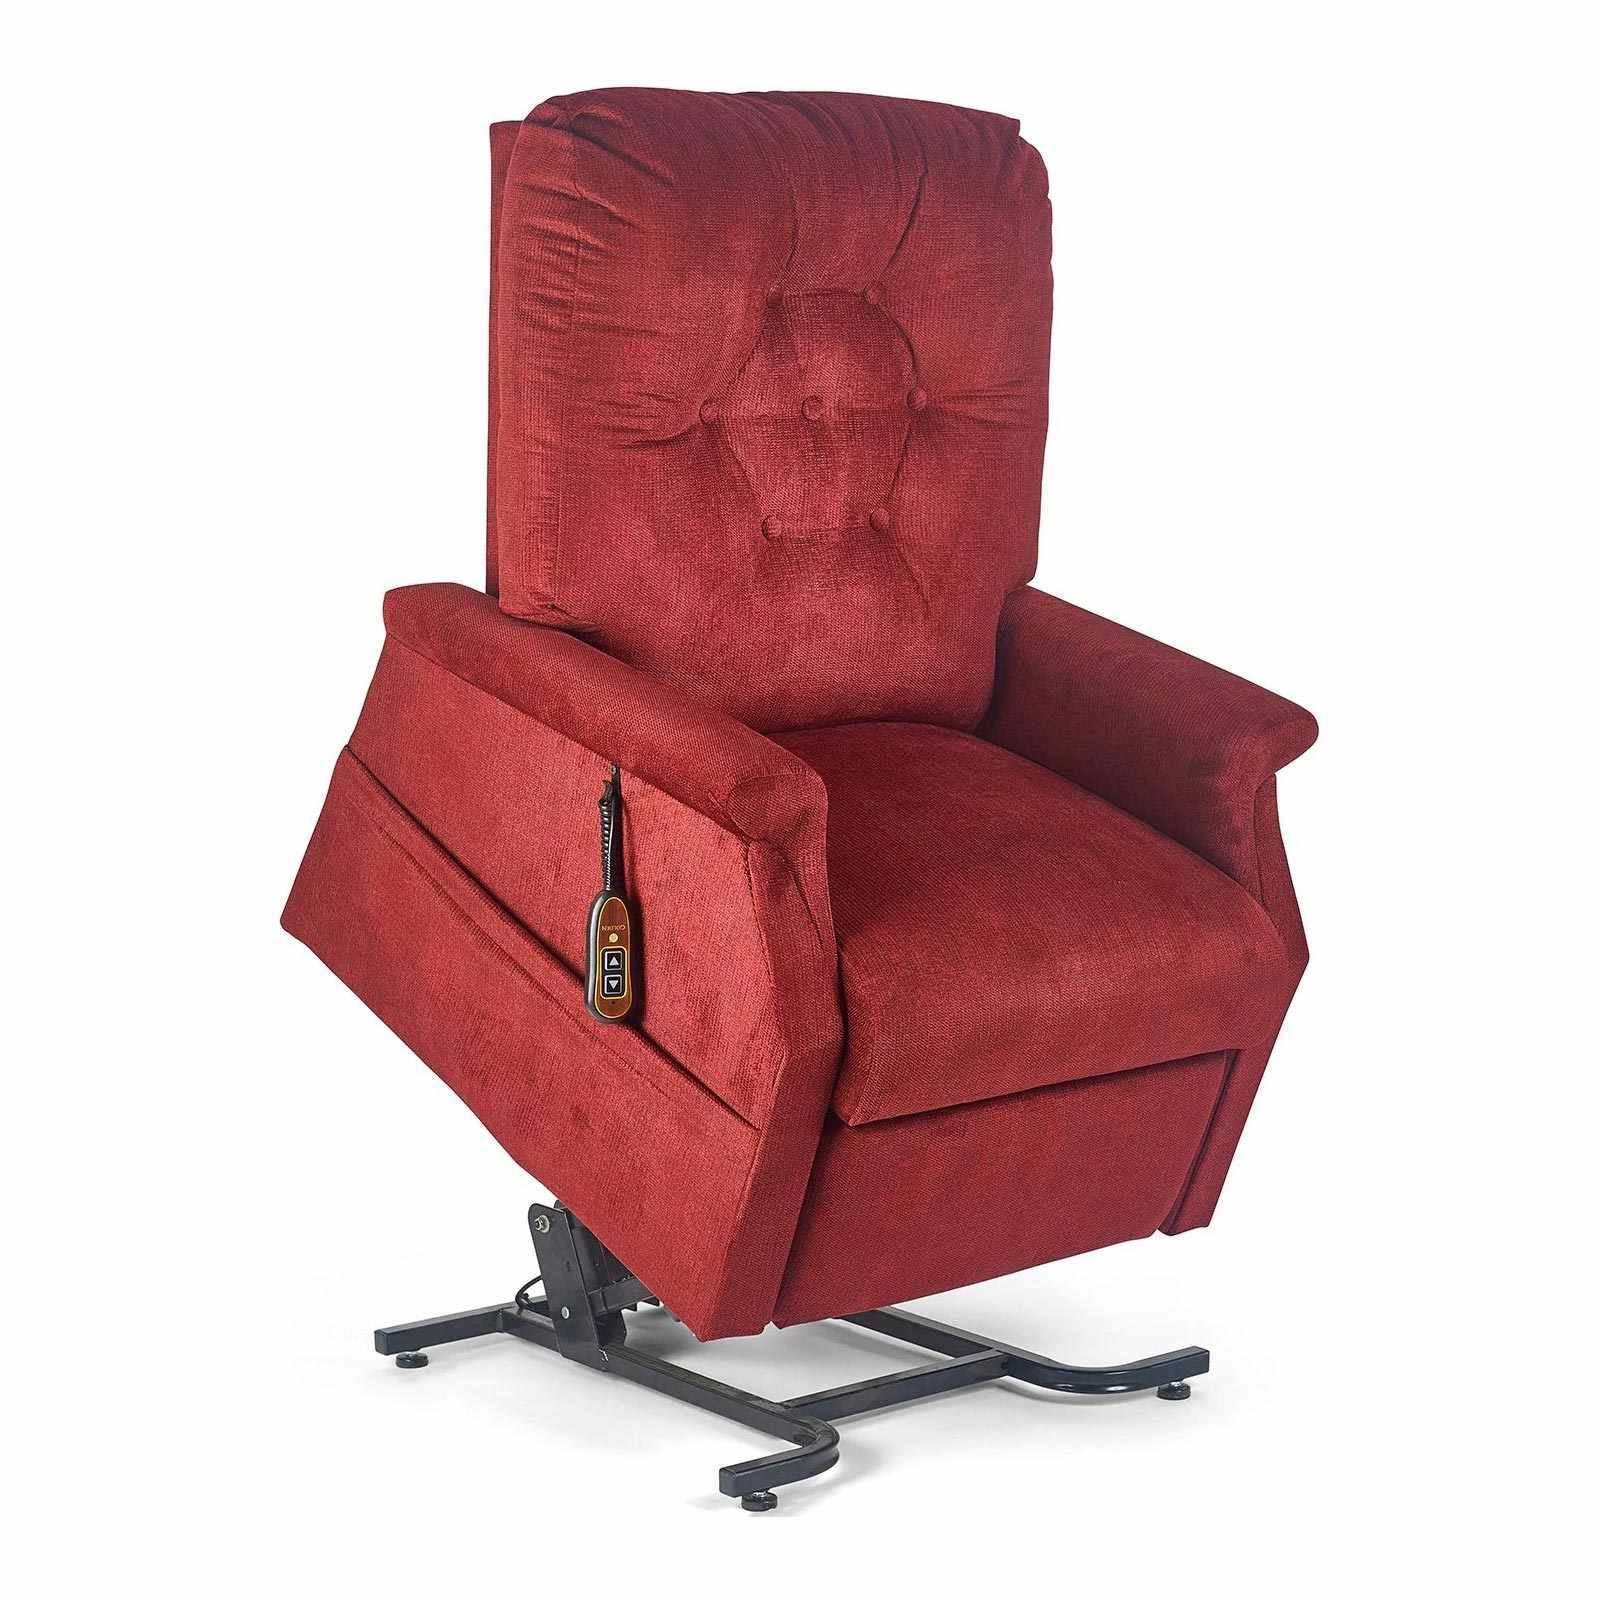 Golden Technologies Capri PR200 Lift Recliner Chair | Medicaleshop